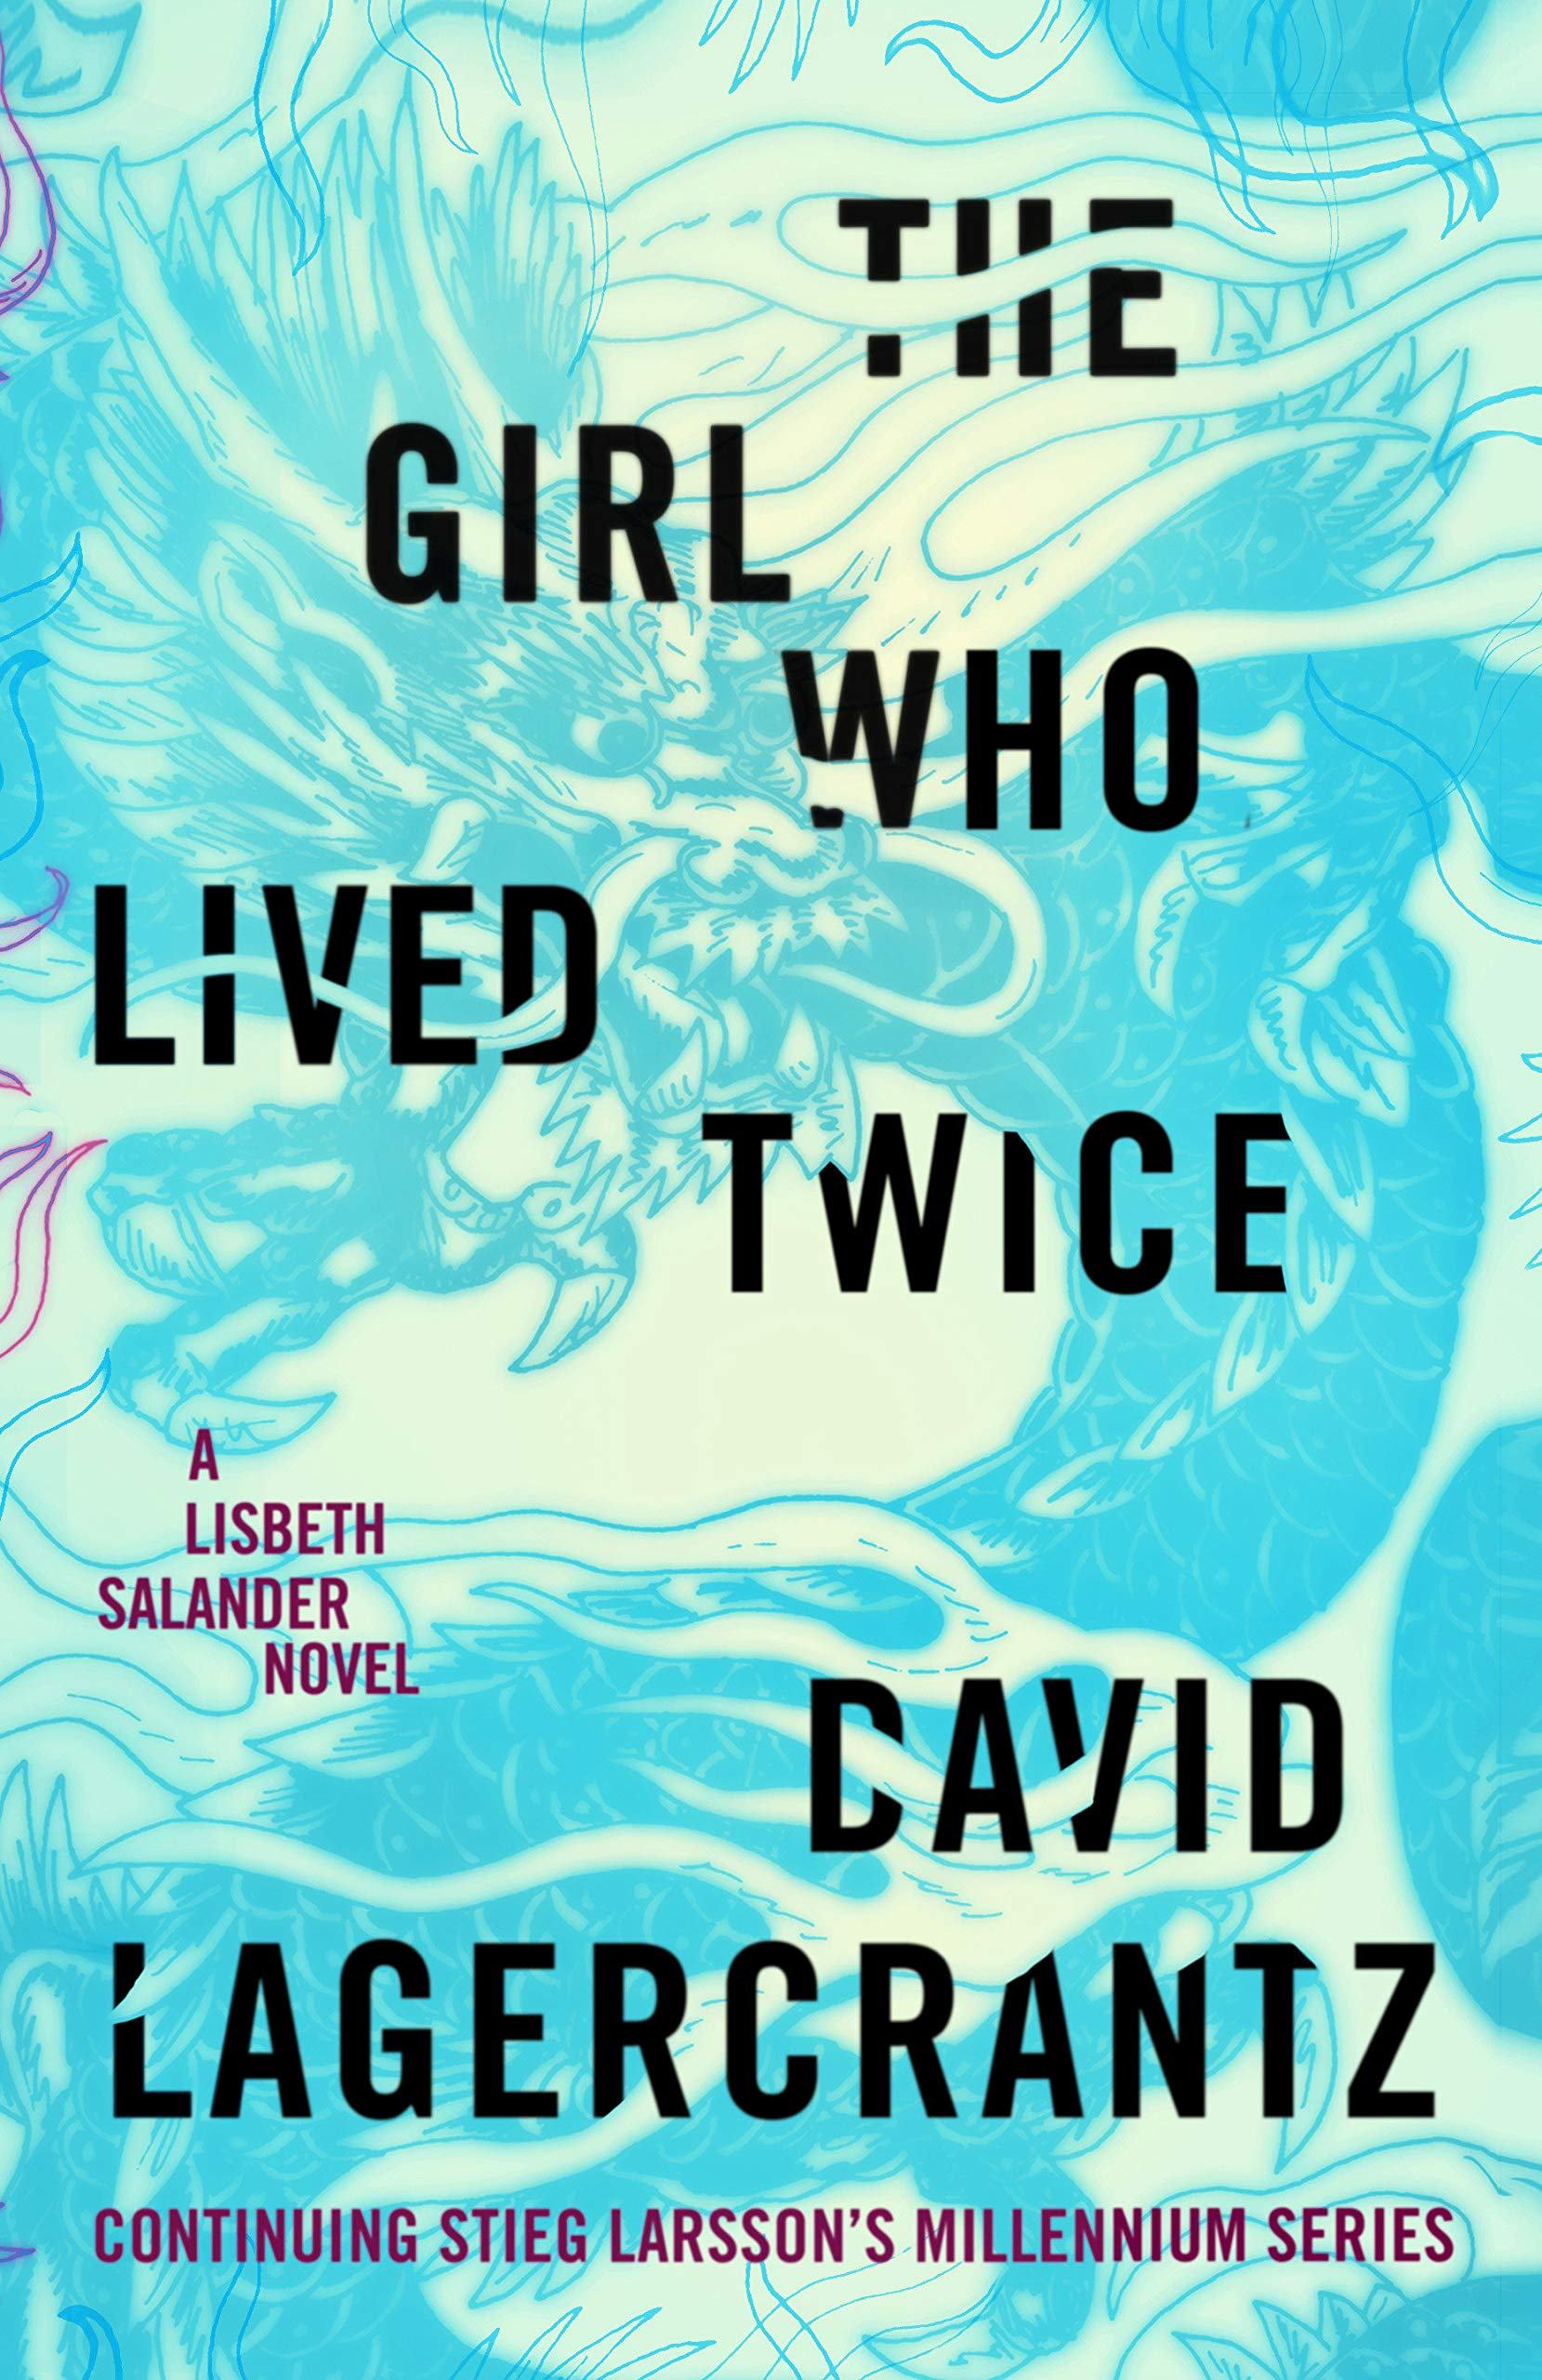 The Girl Who Lived Twice: A Lisbeth Salander novel, continuing Stieg Larsson's Millennium Series (Millennium #6) by David Lagercrantz